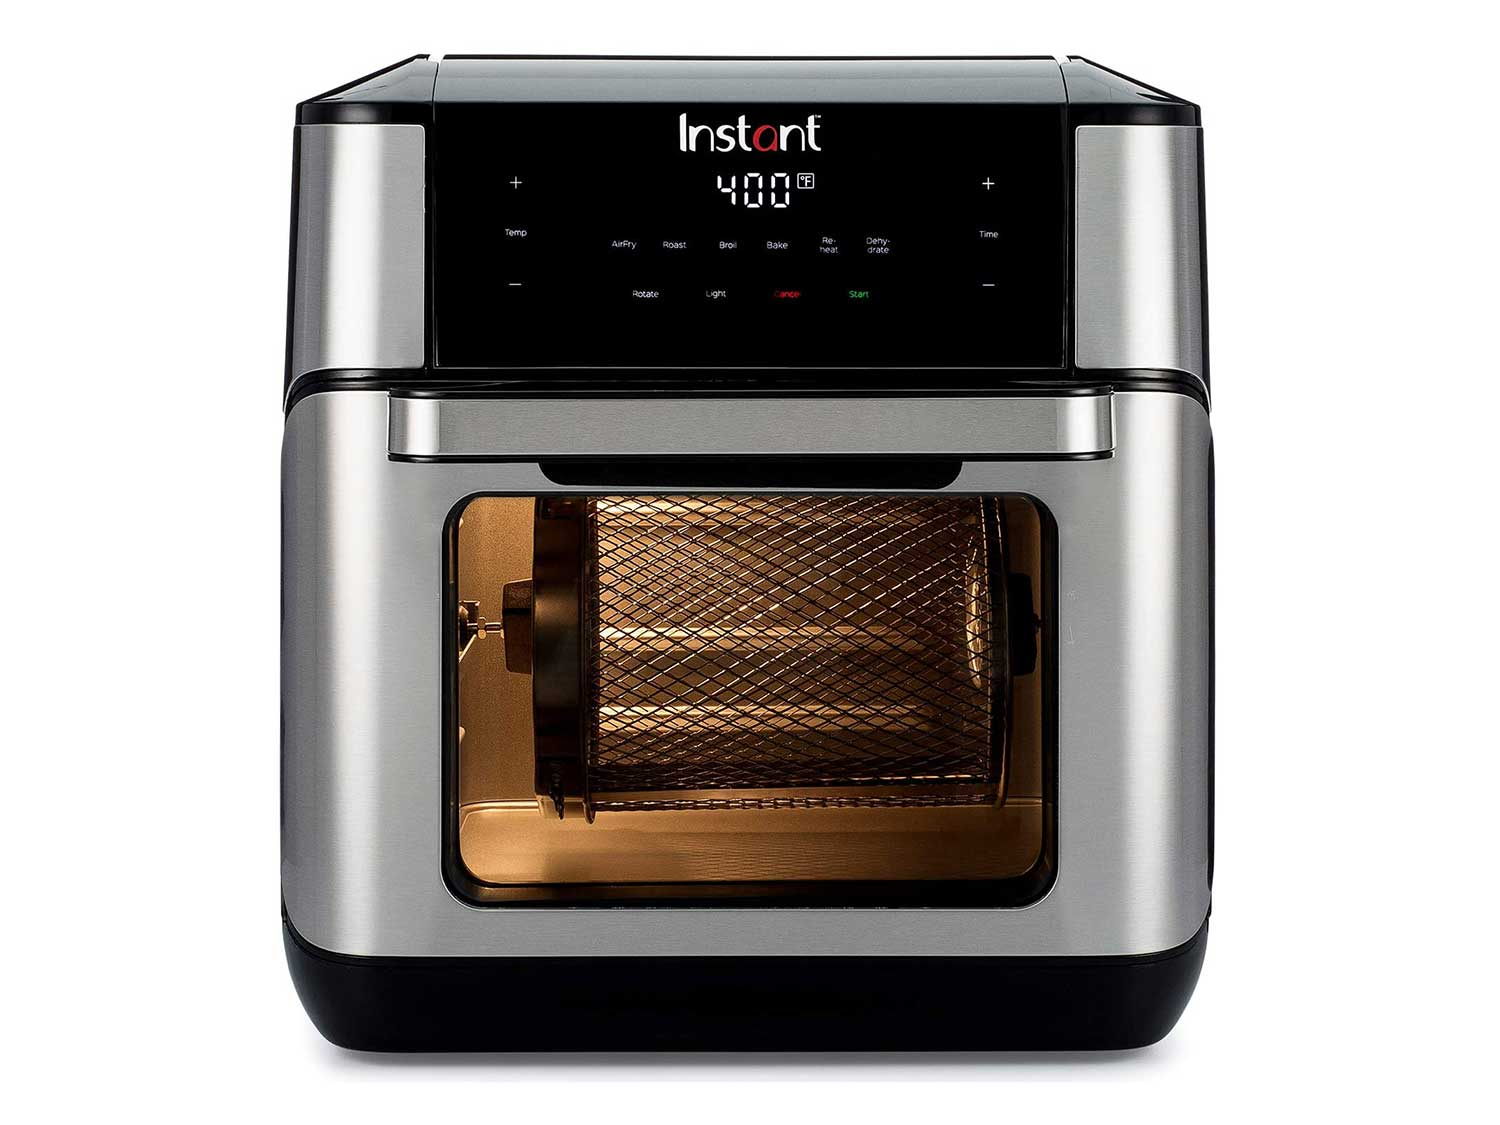 Instant Vortex Plus Air Fryer Oven 7 in 1 with Rotisserie, 10 Qt, EvenCrisp Technology